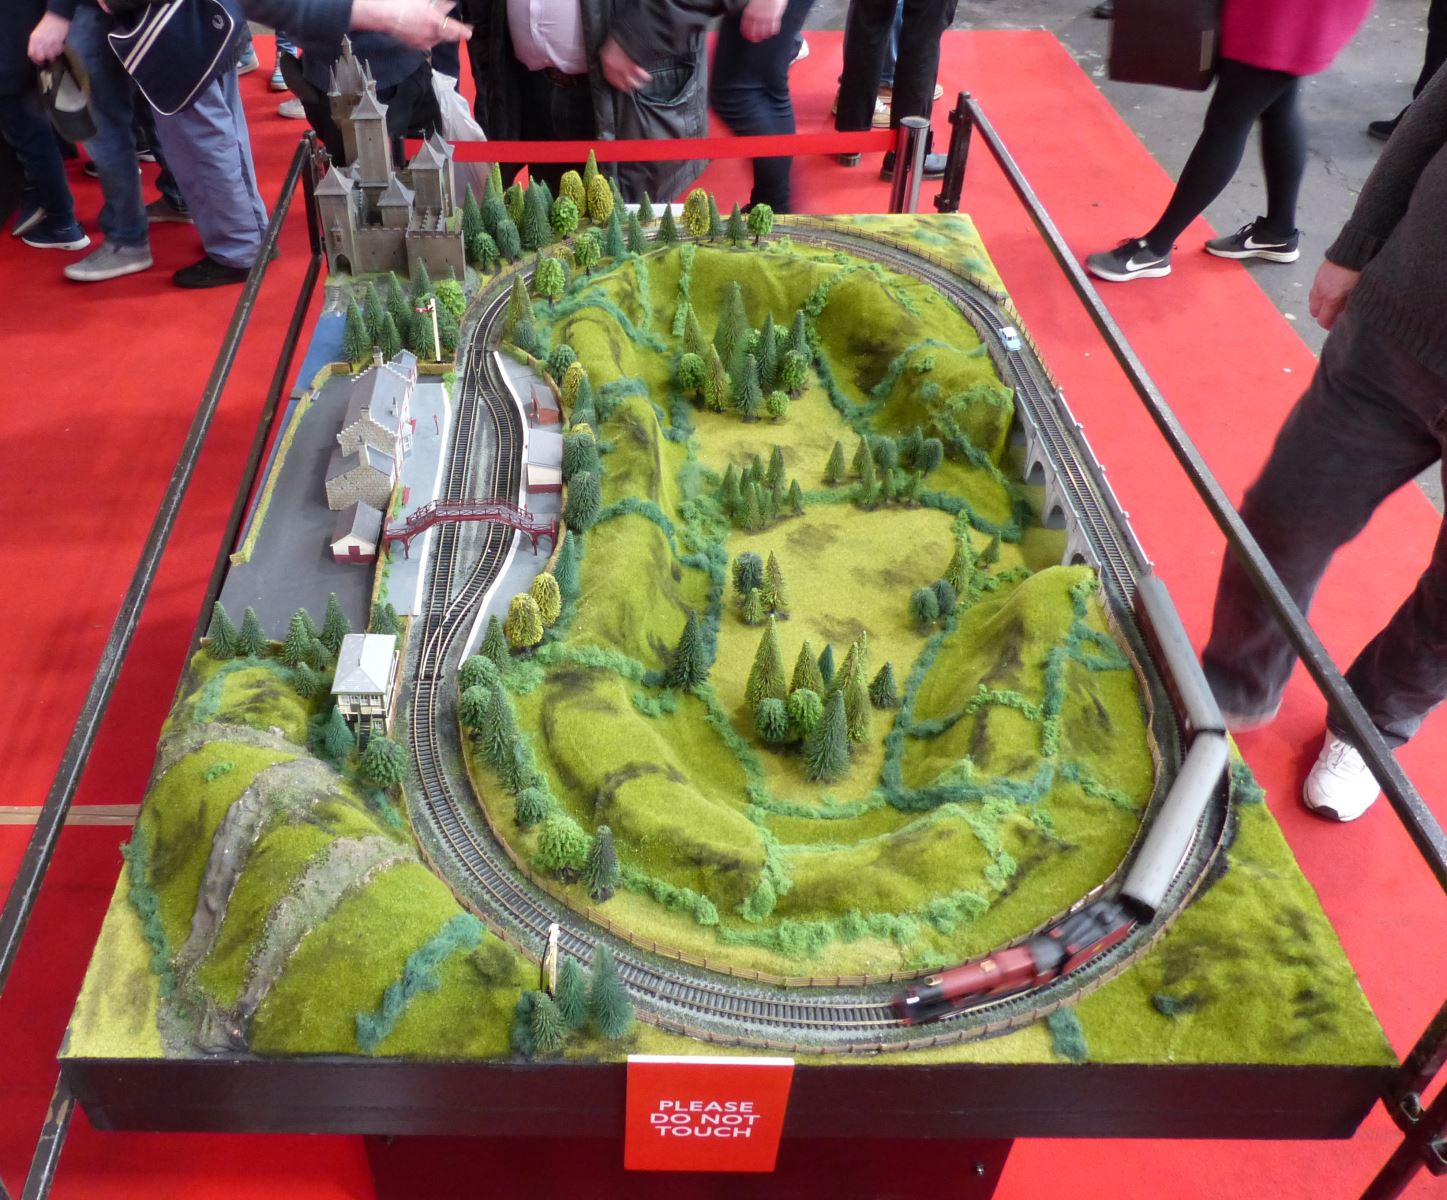 Hornby stand model railway